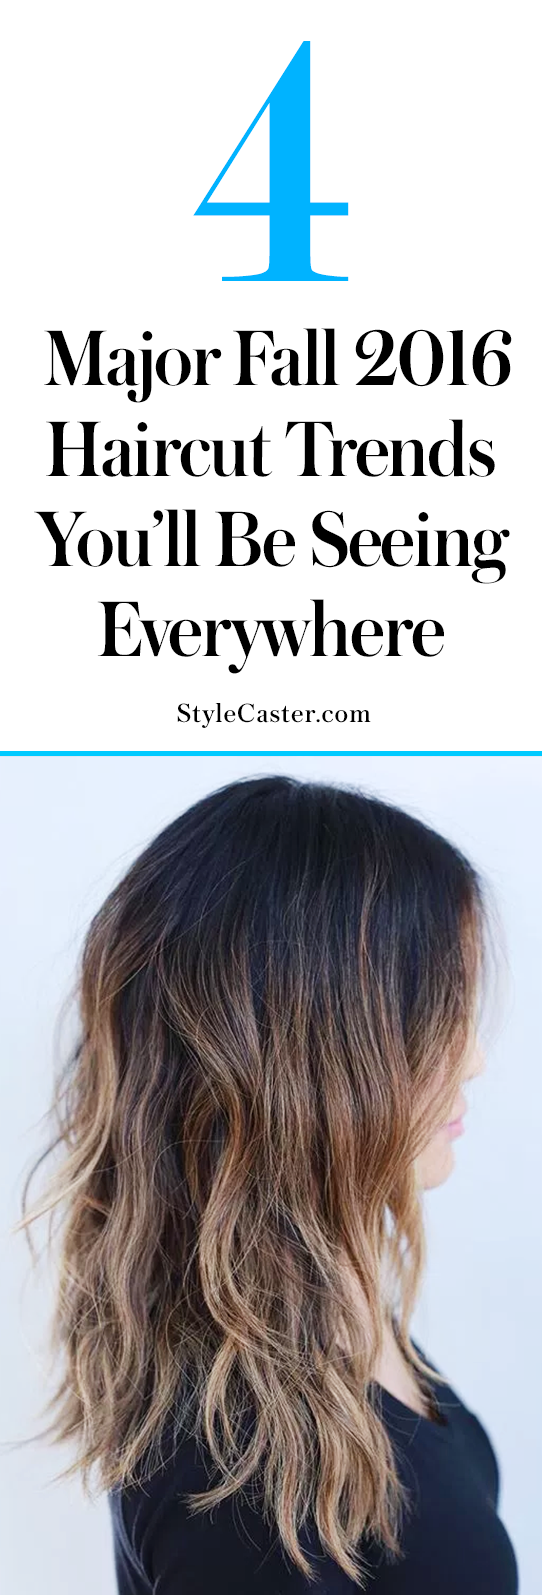 pictures 4 Major Fall Haircut Trends as Told byInstagram